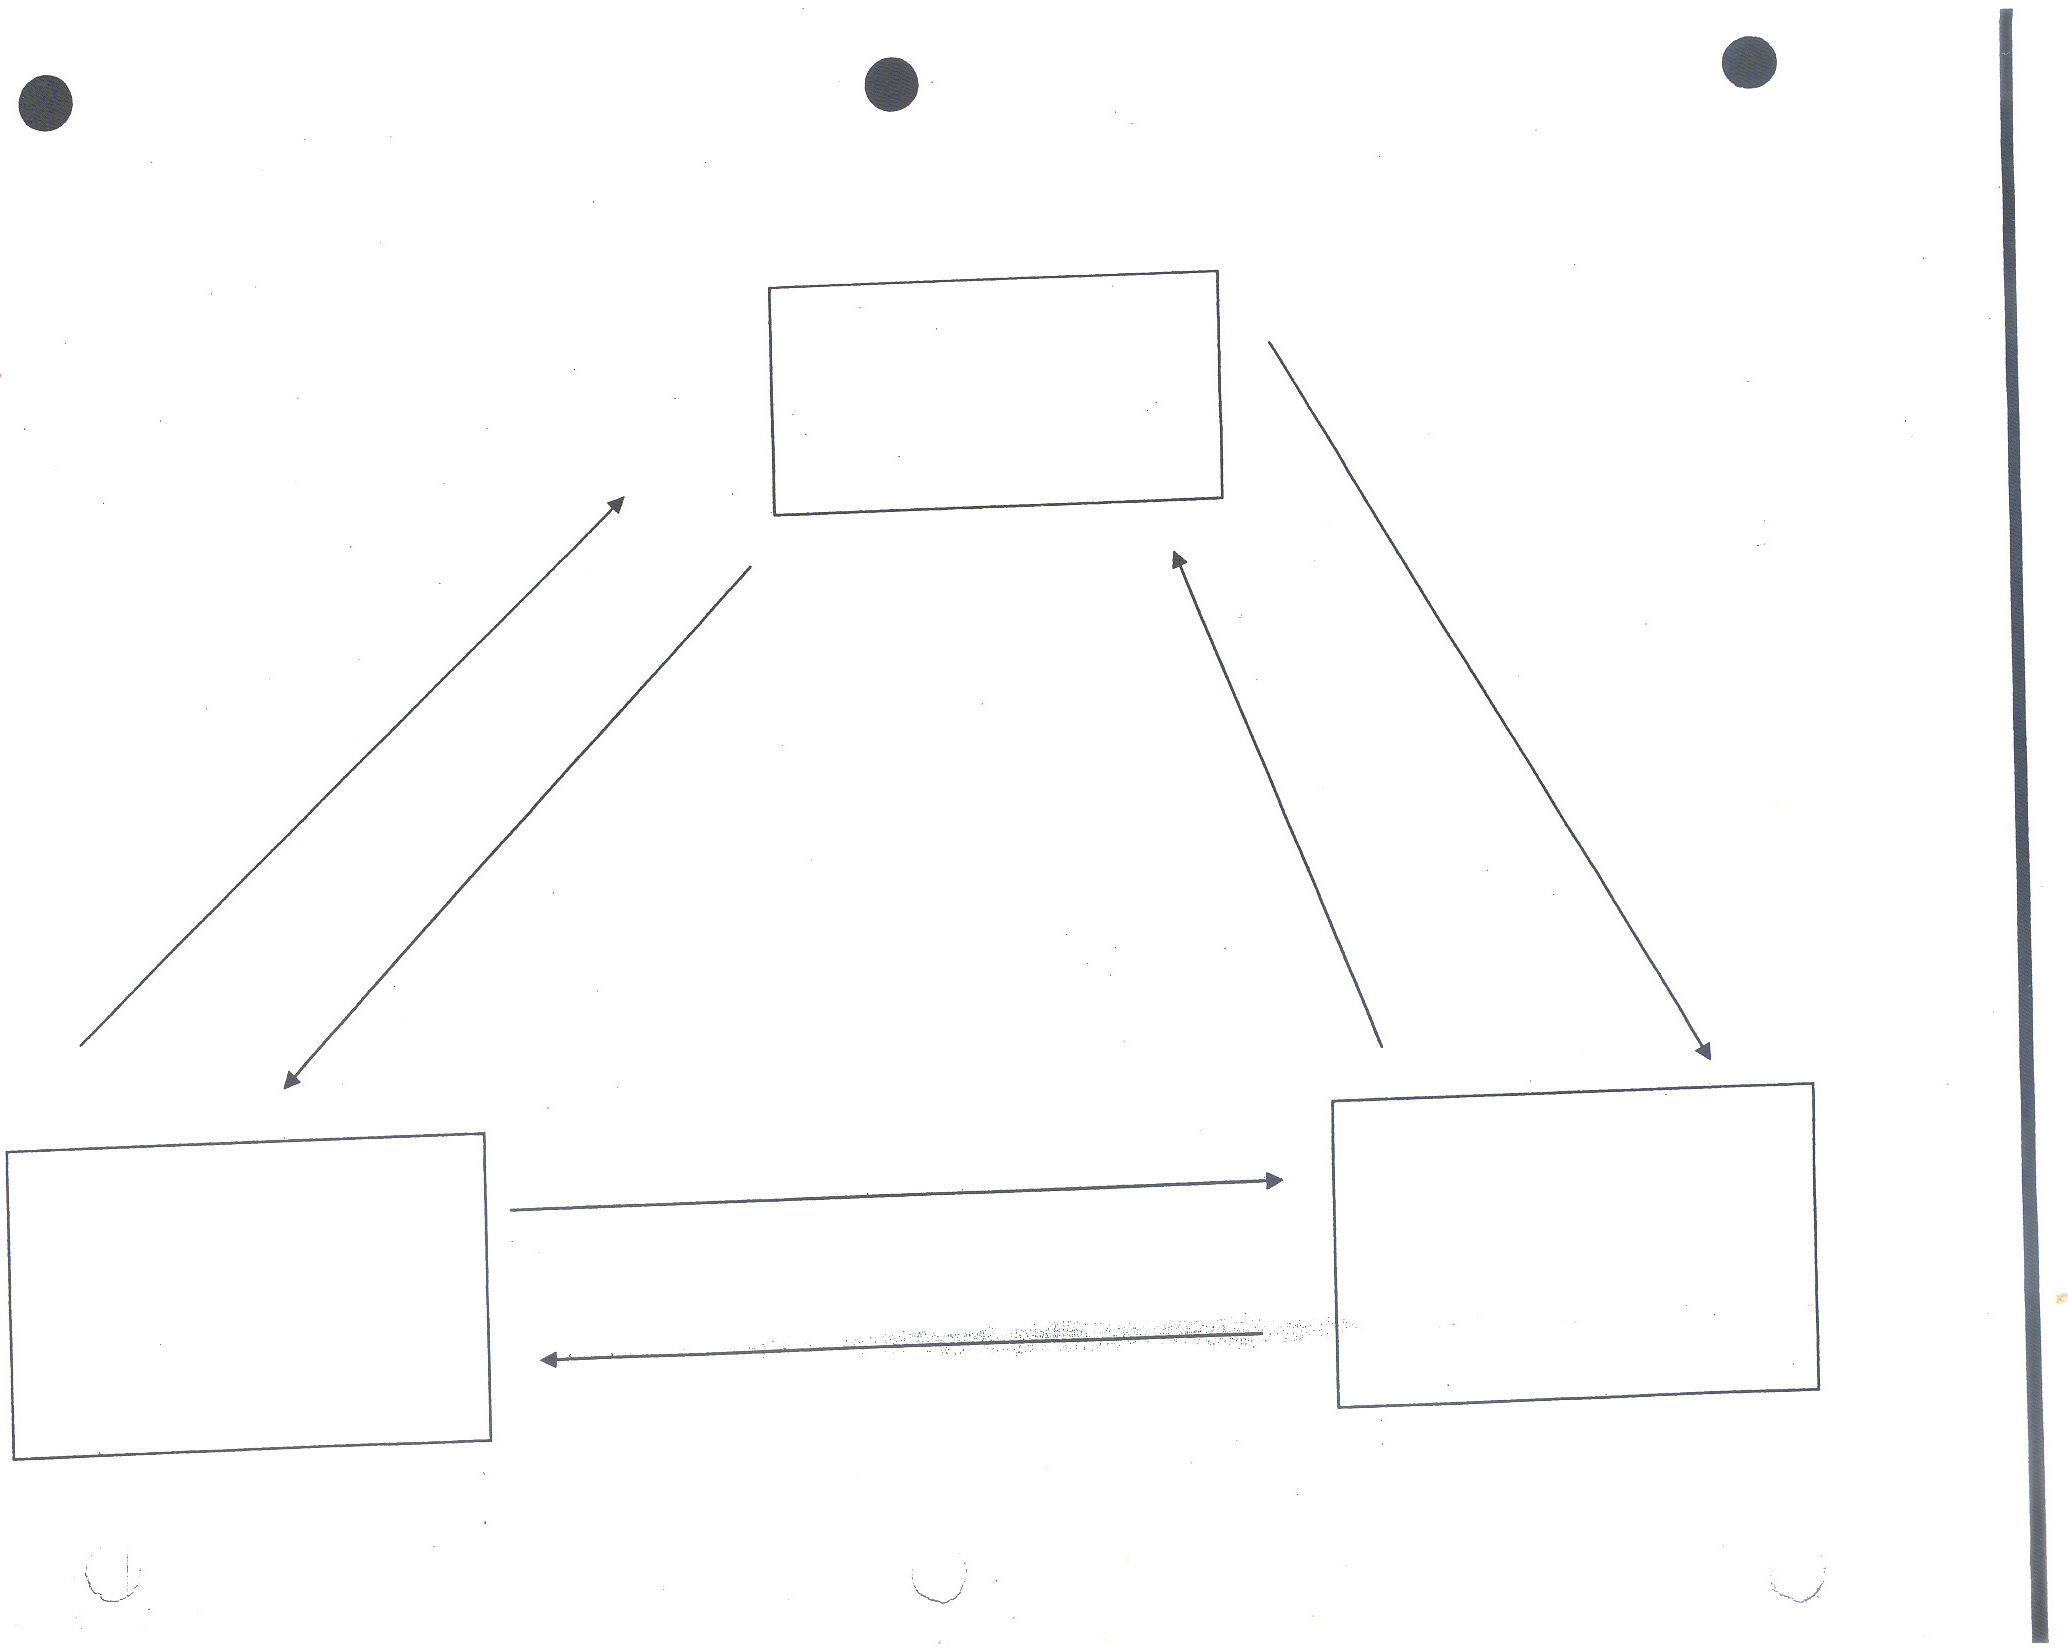 us government checks and balances diagram trailer breakaway box wiring blank chart pictures to pin on